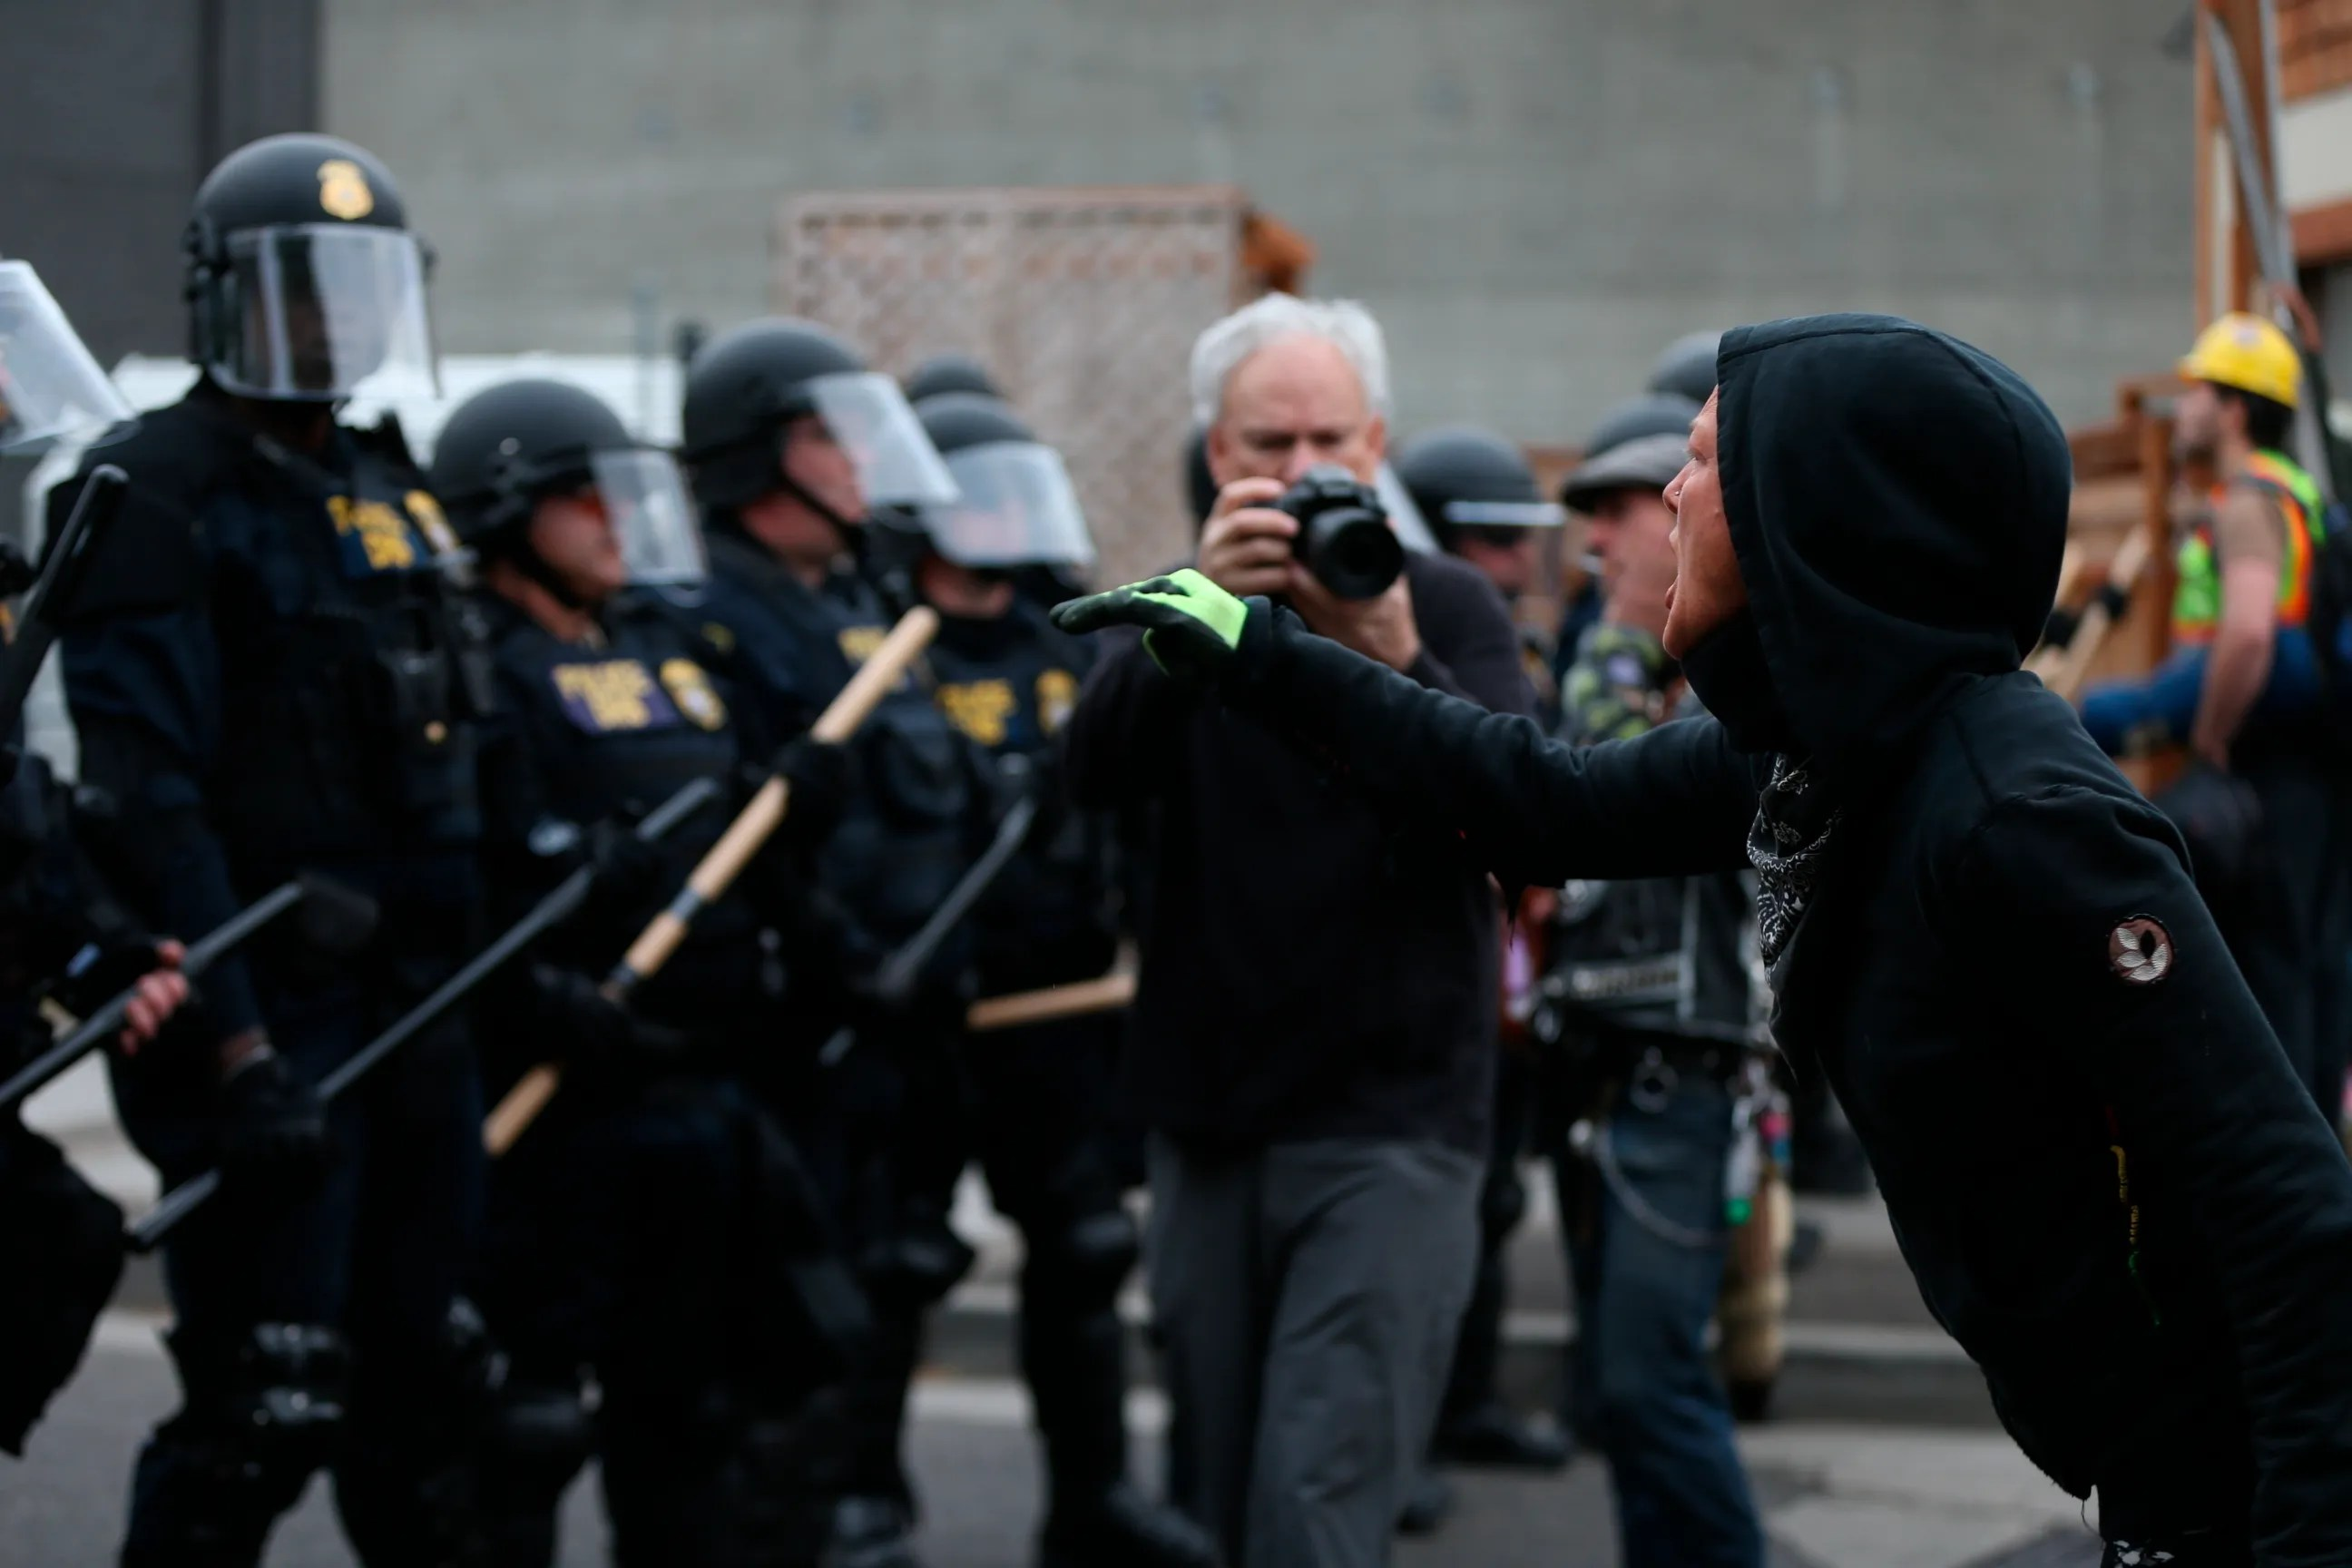 9 Detained, Officers Reopen Immigration Office In Oregon